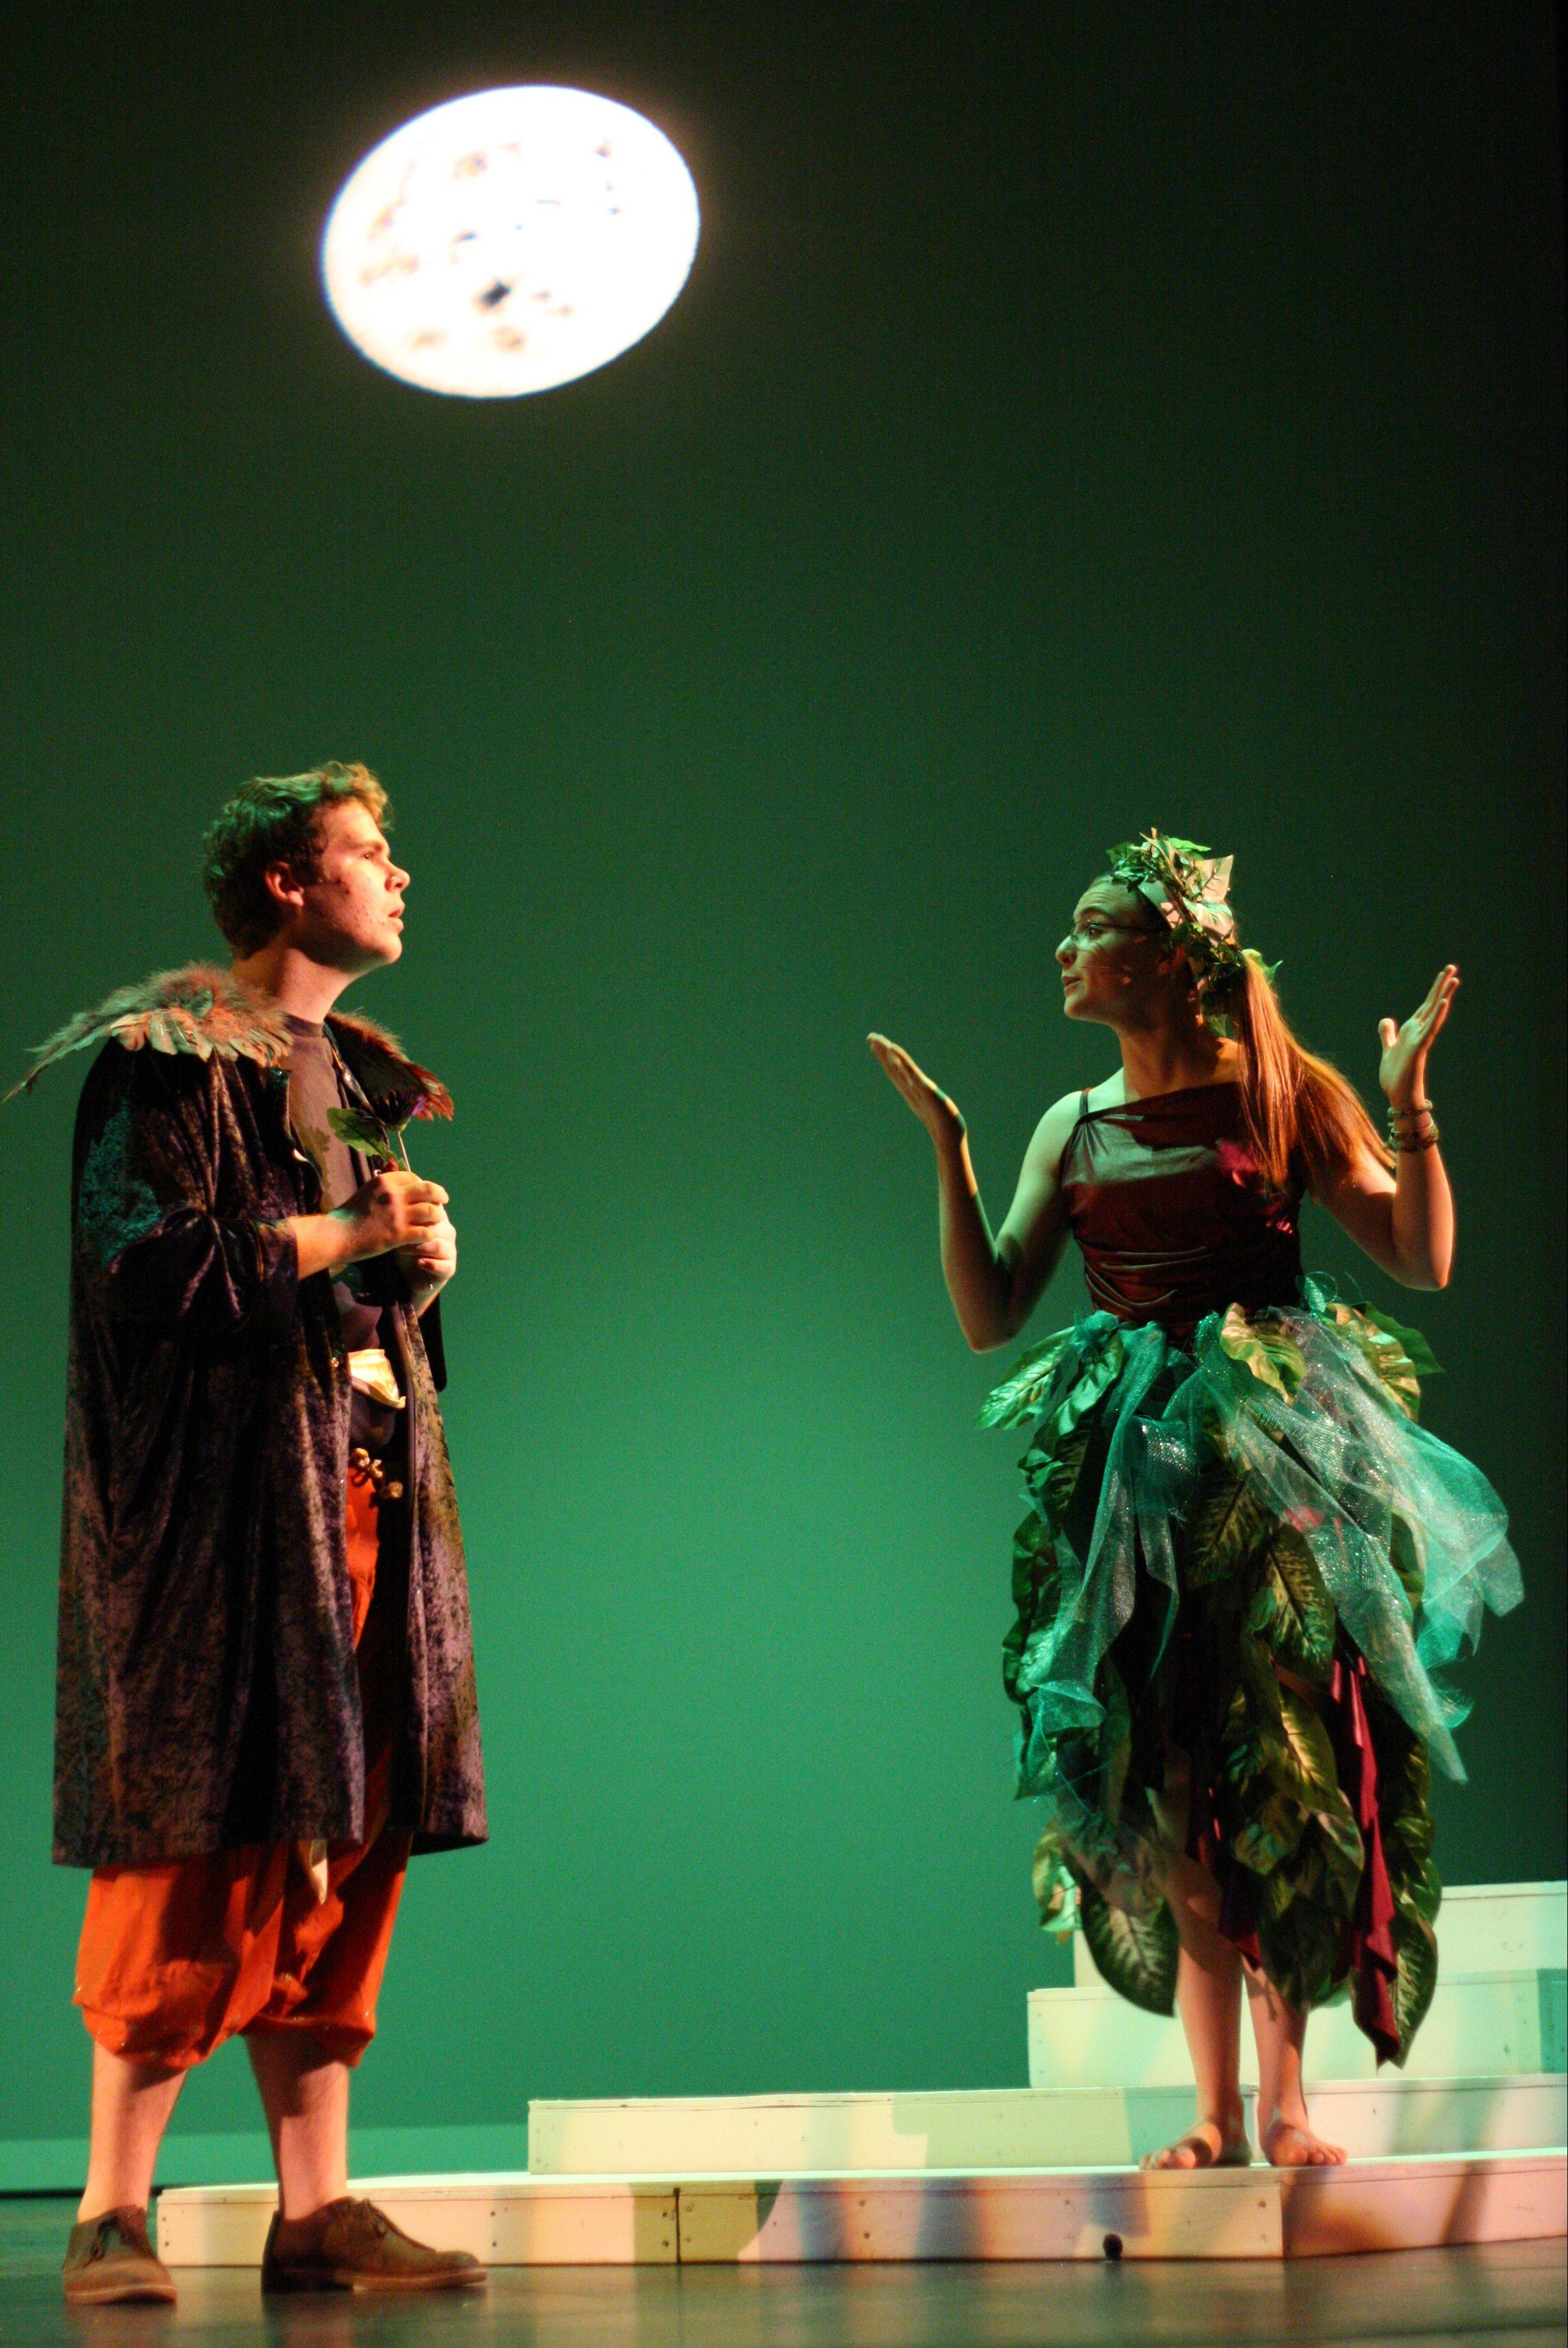 During a rehearsal for Hampshire High School�s production of �A Midsummer Night�s Dream,� Puck and Oberon discuss the mischief she has caused after causing Lysander to fall in love with the wrong person. Puck is played by Niki Curatti; Oberon by Thomas Burkhead.